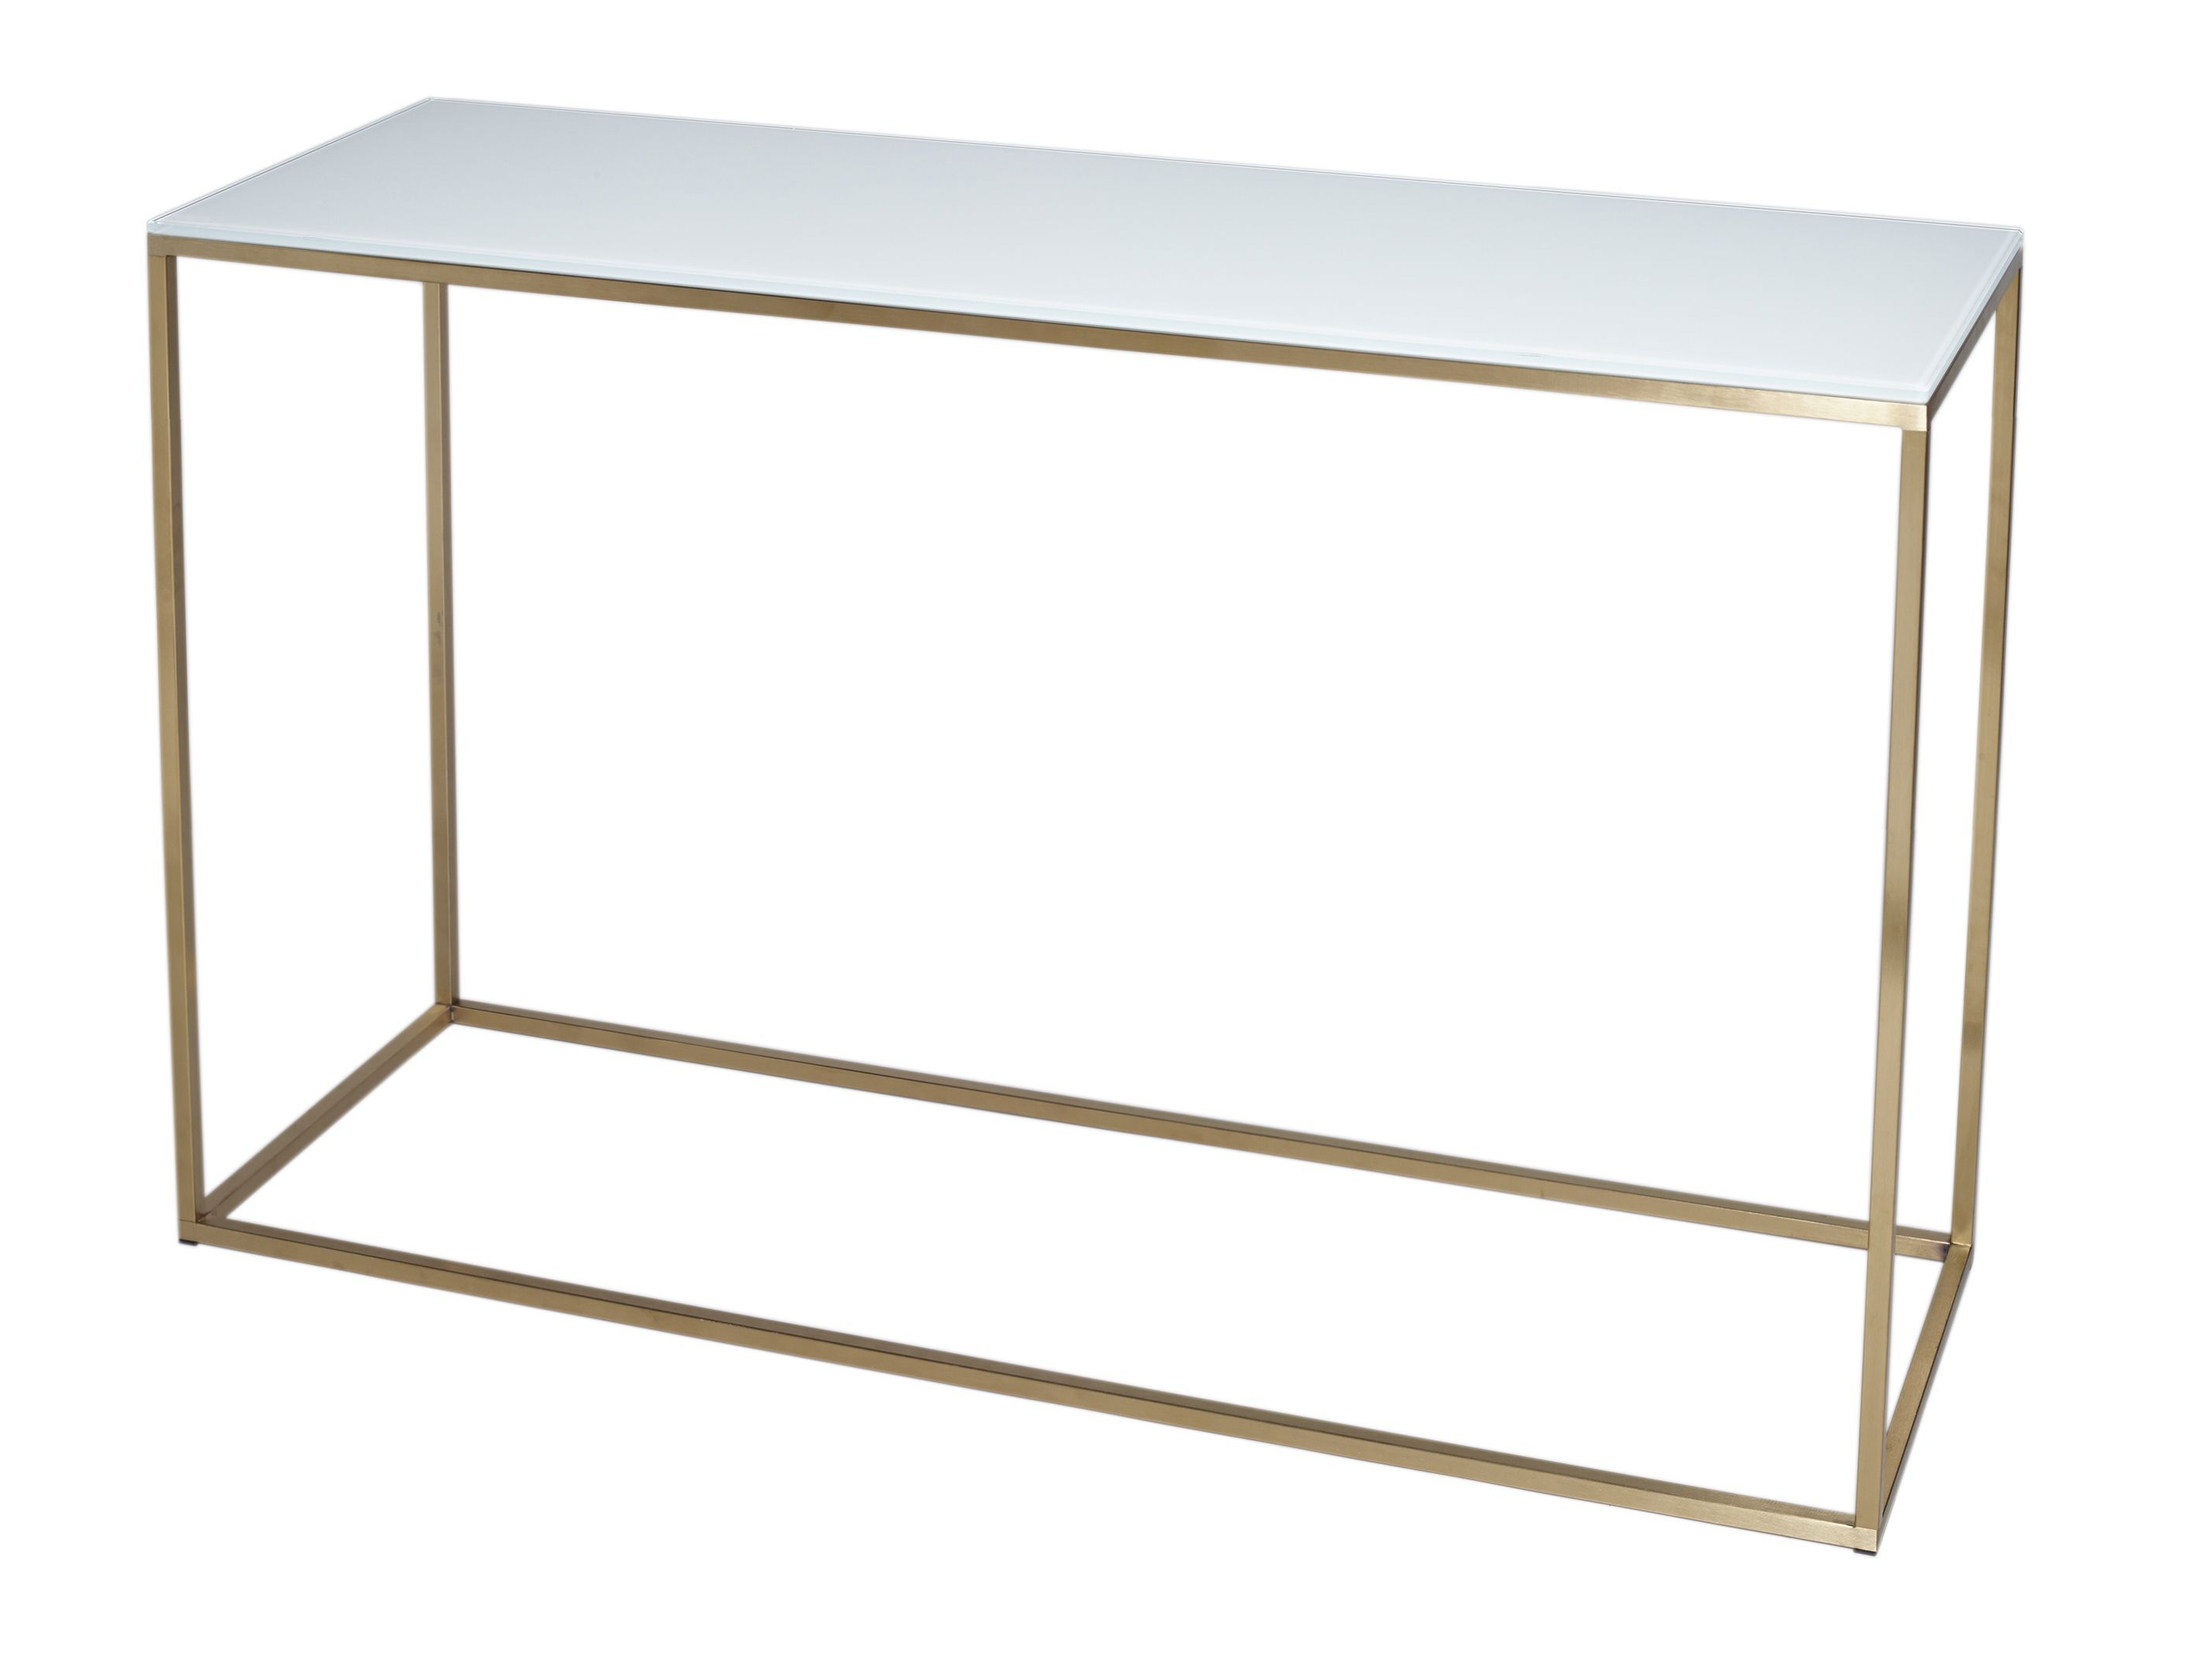 Elke Glass Console Tables With Brass Base Pertaining To 2018 Brass Console Table (View 8 of 20)